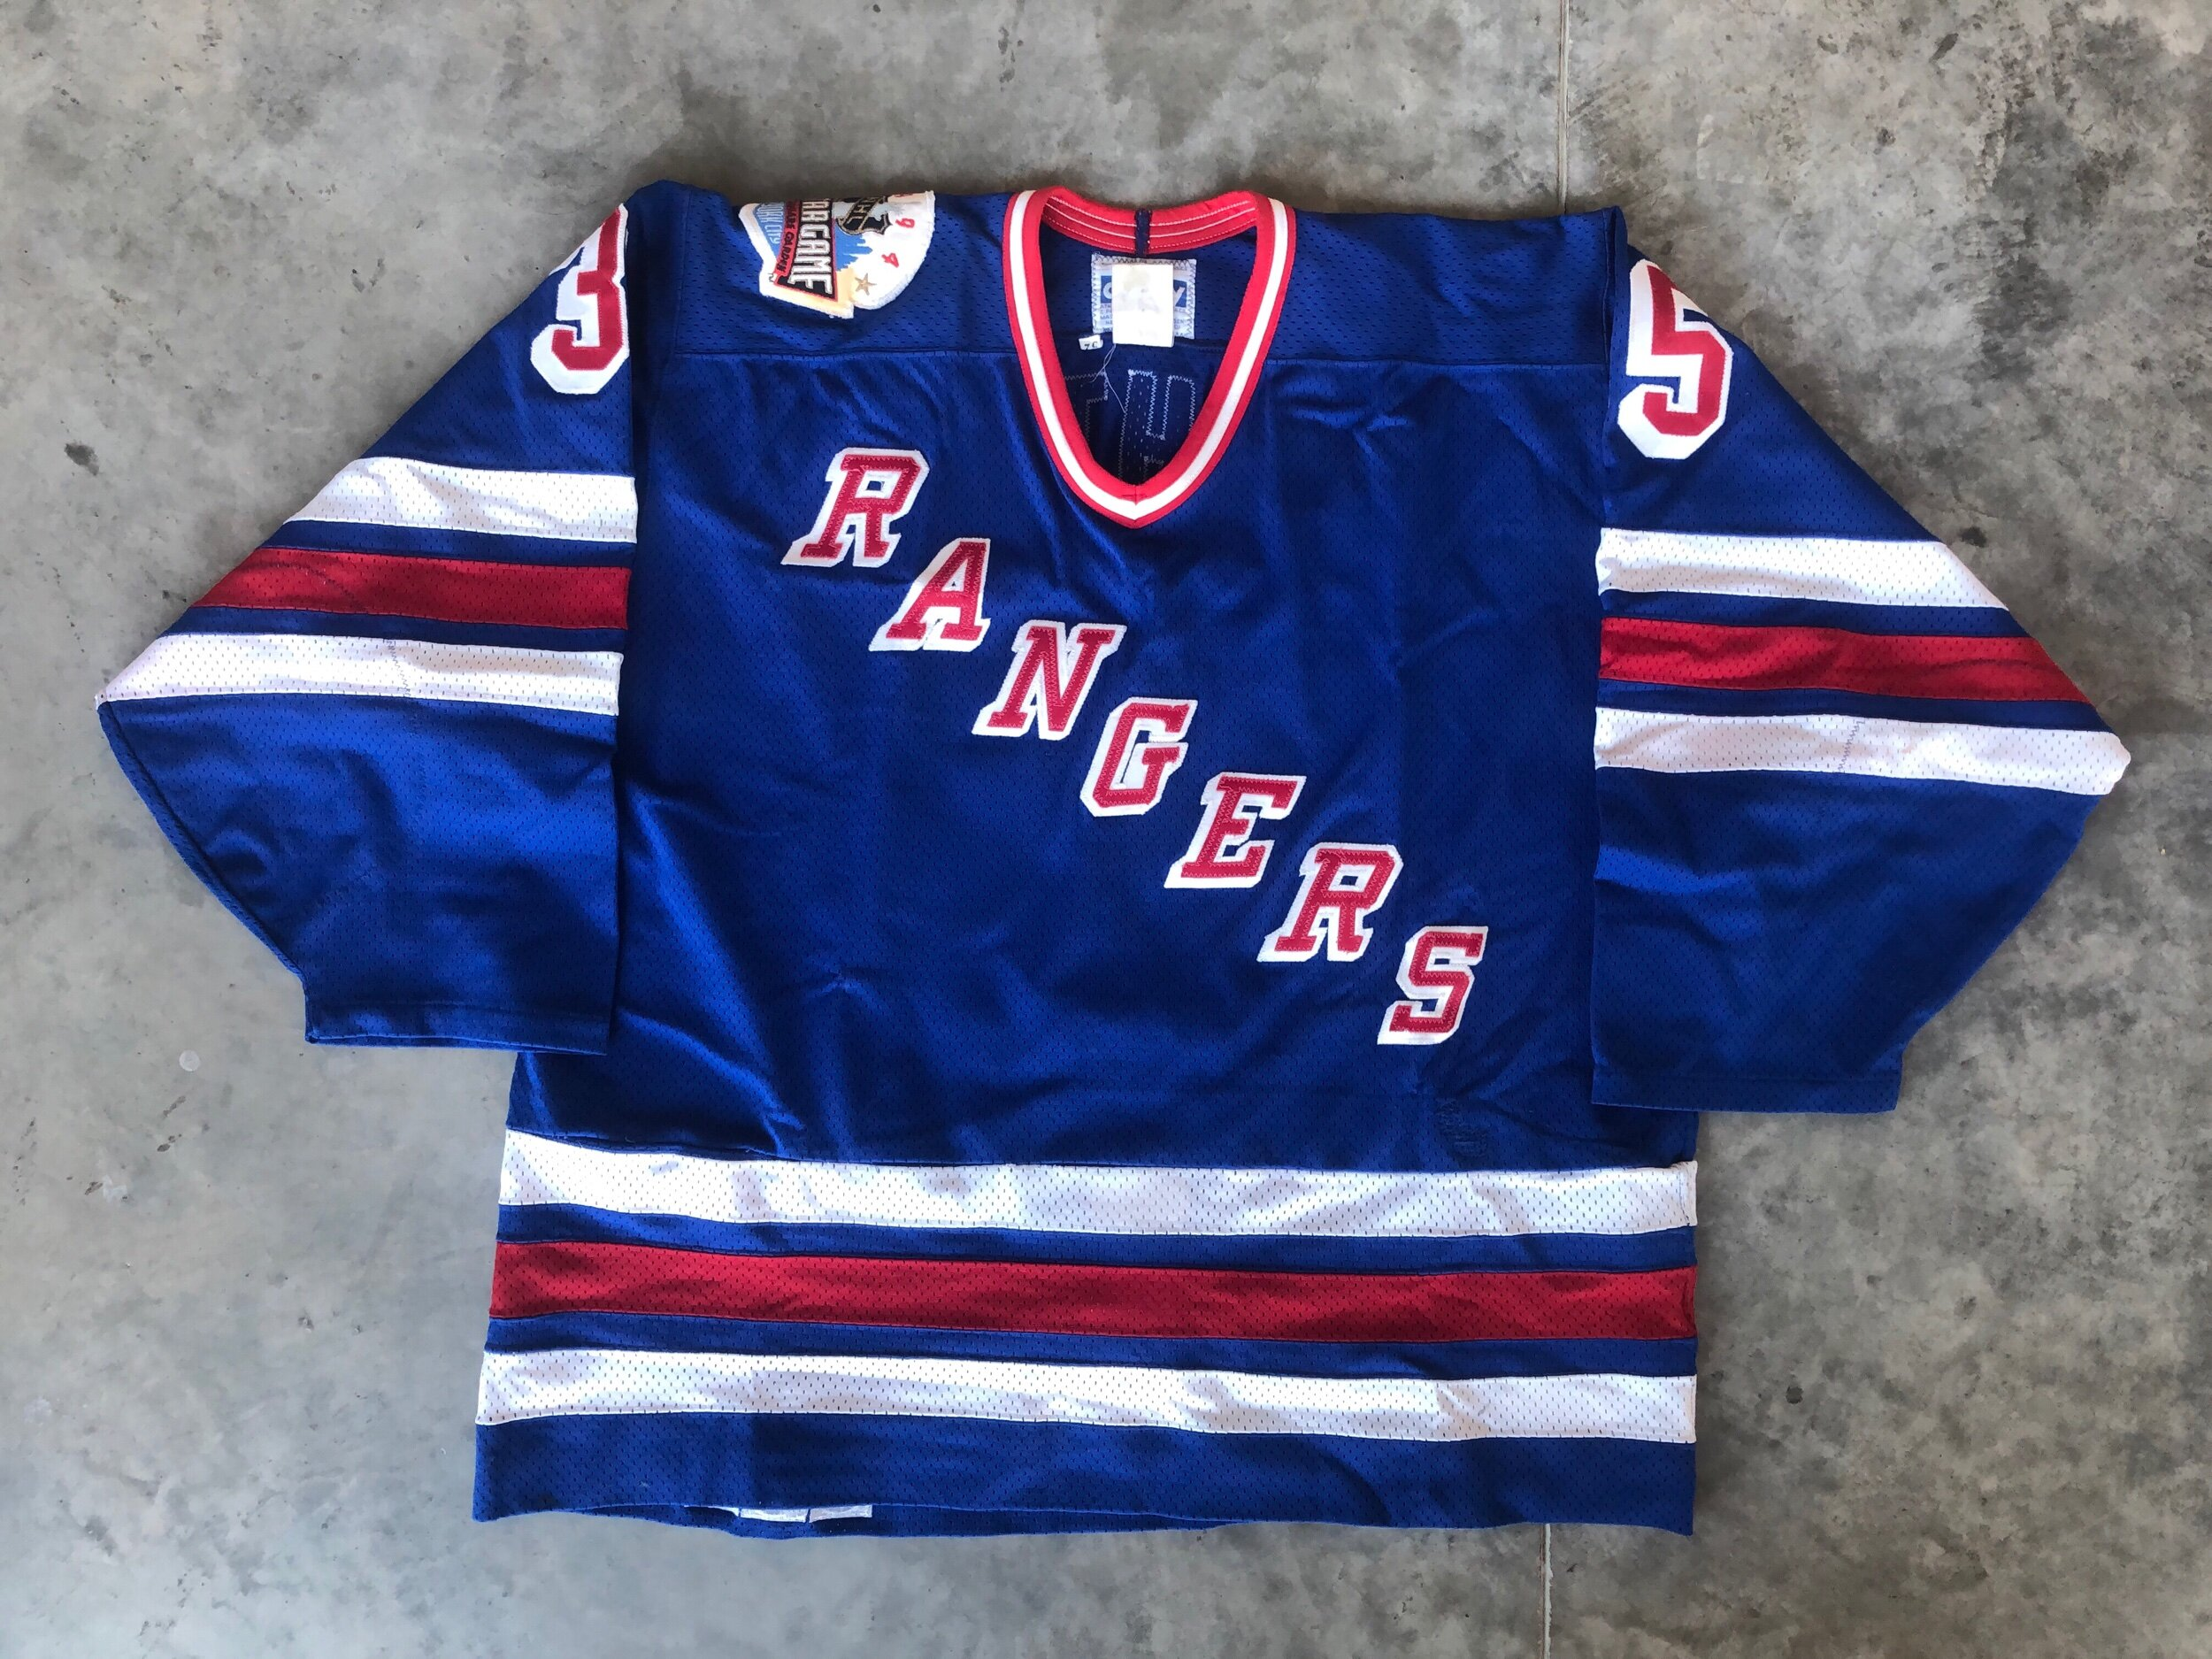 1993-94 Mike Richter game worn road jersey with the 1995 NHL all star game patch